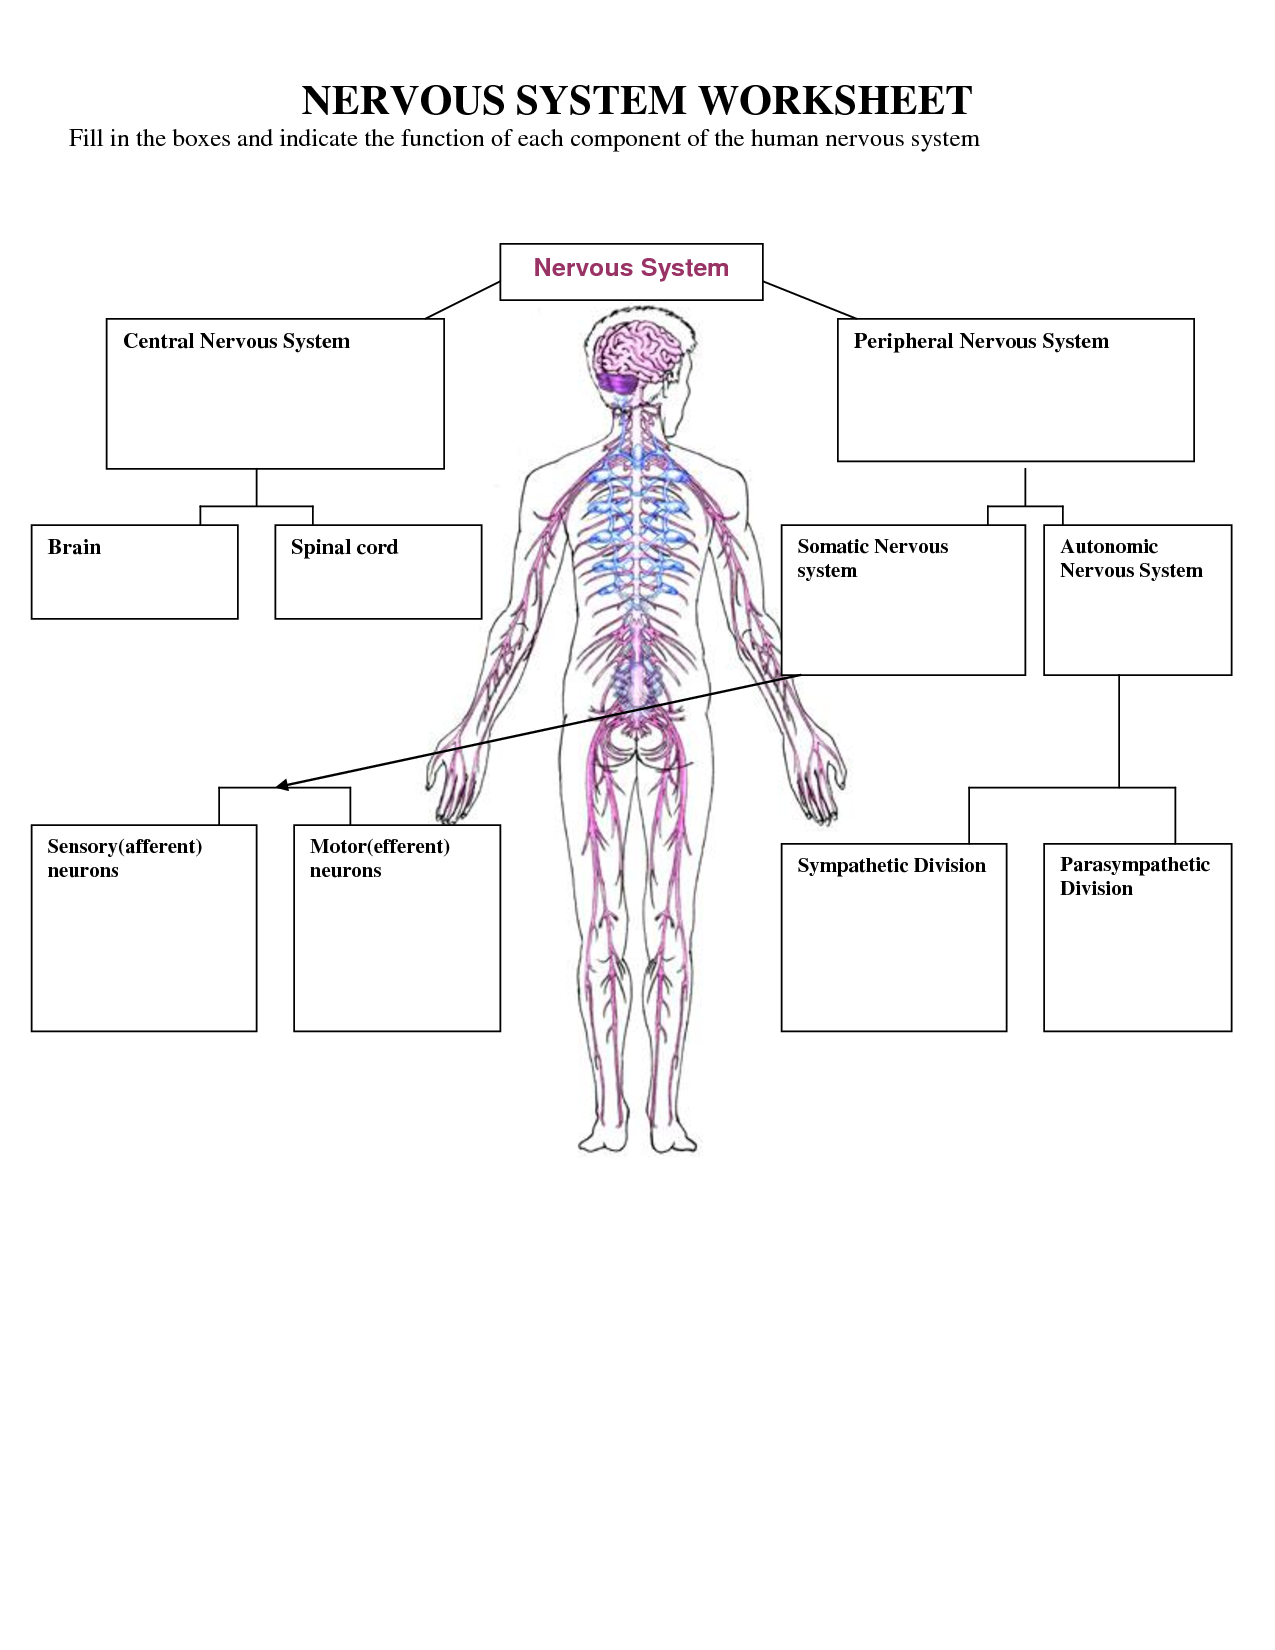 Worksheets Nervous System Worksheets nervous system worksheets places to visit pinterest worksheets